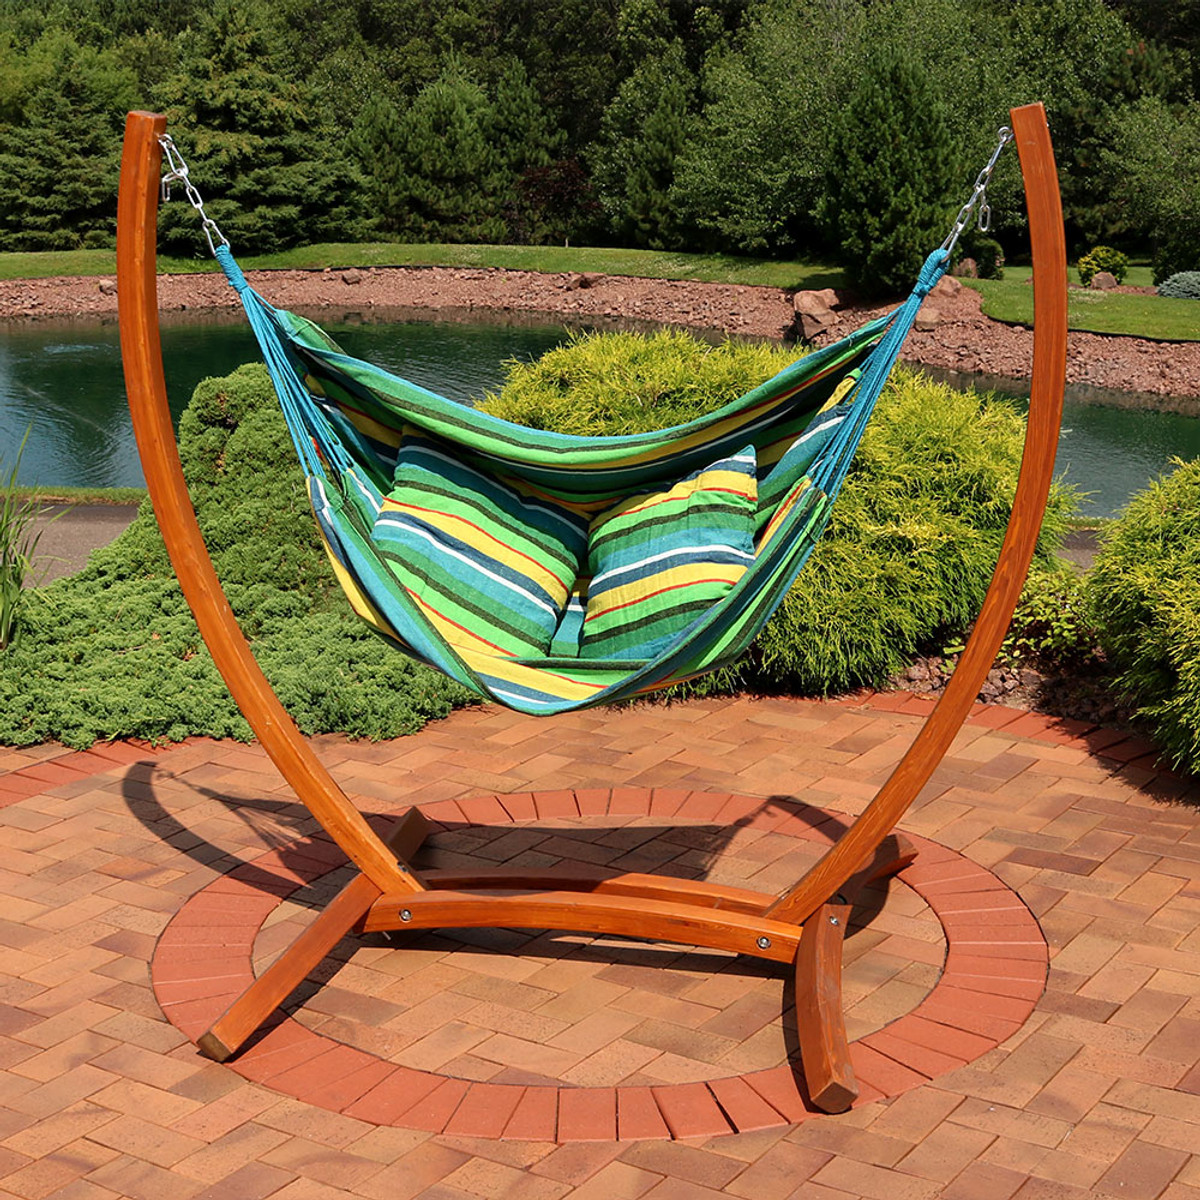 Exceptional Sunnydaze Hanging Hammock Chair Swing With Sturdy Space Saving Wooden Stand  For Indoor Or Outdoor Use, Ocean Breeze